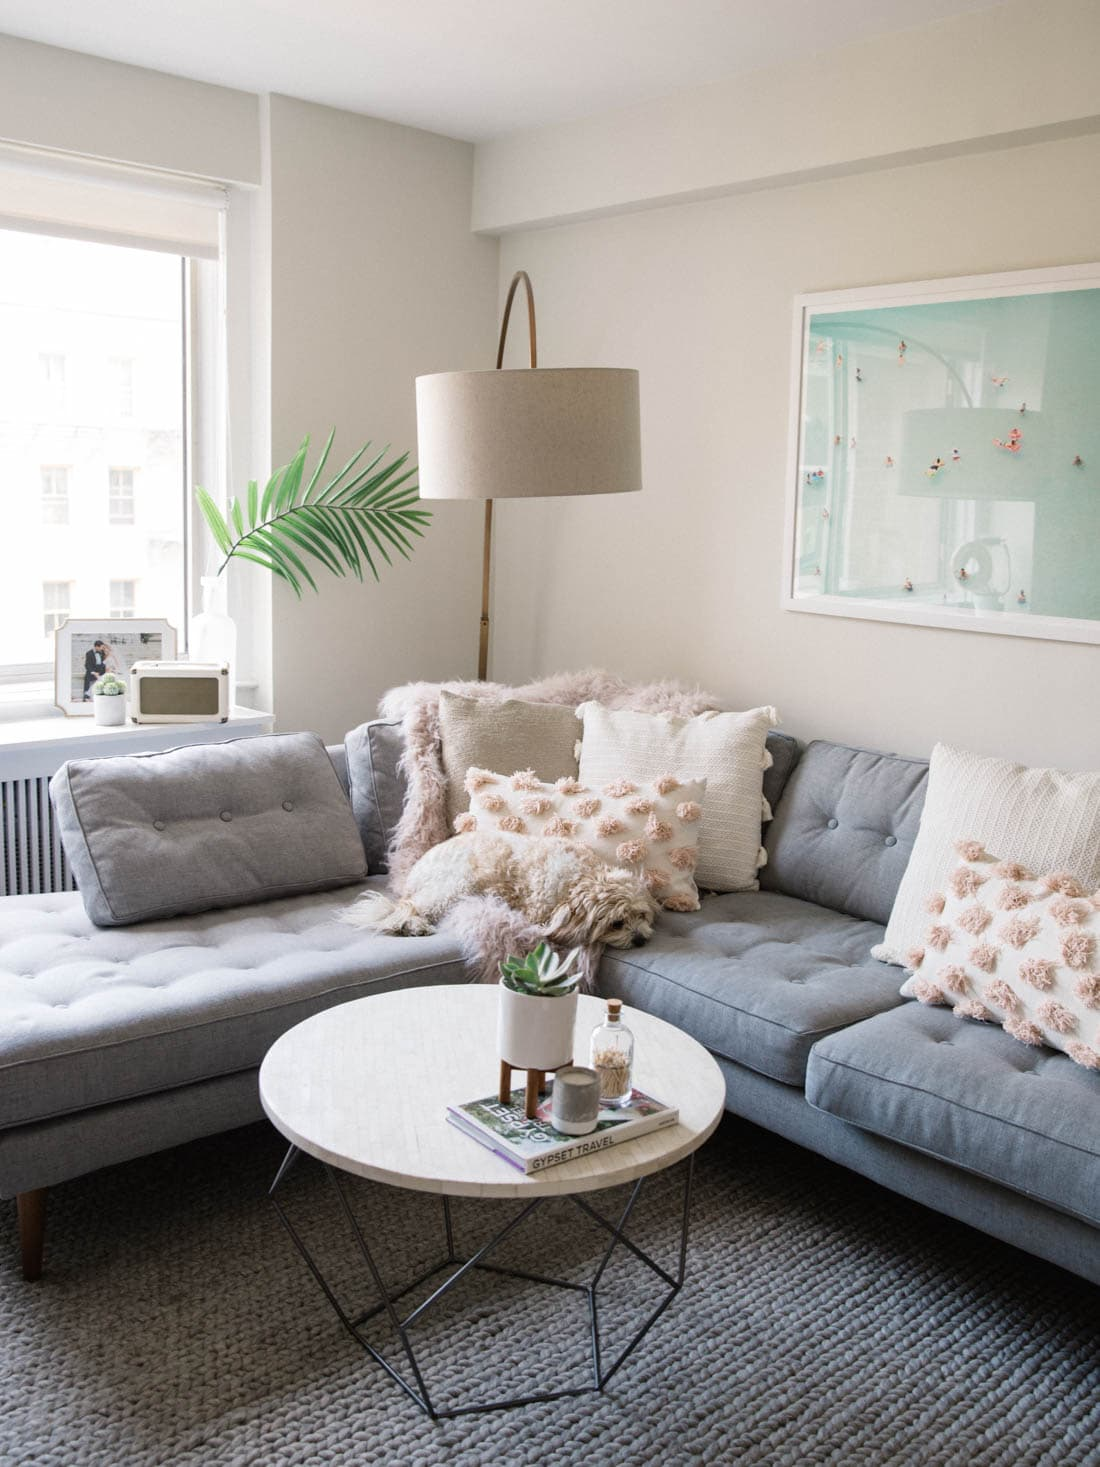 easy ways to update your living space each season styled snapshots